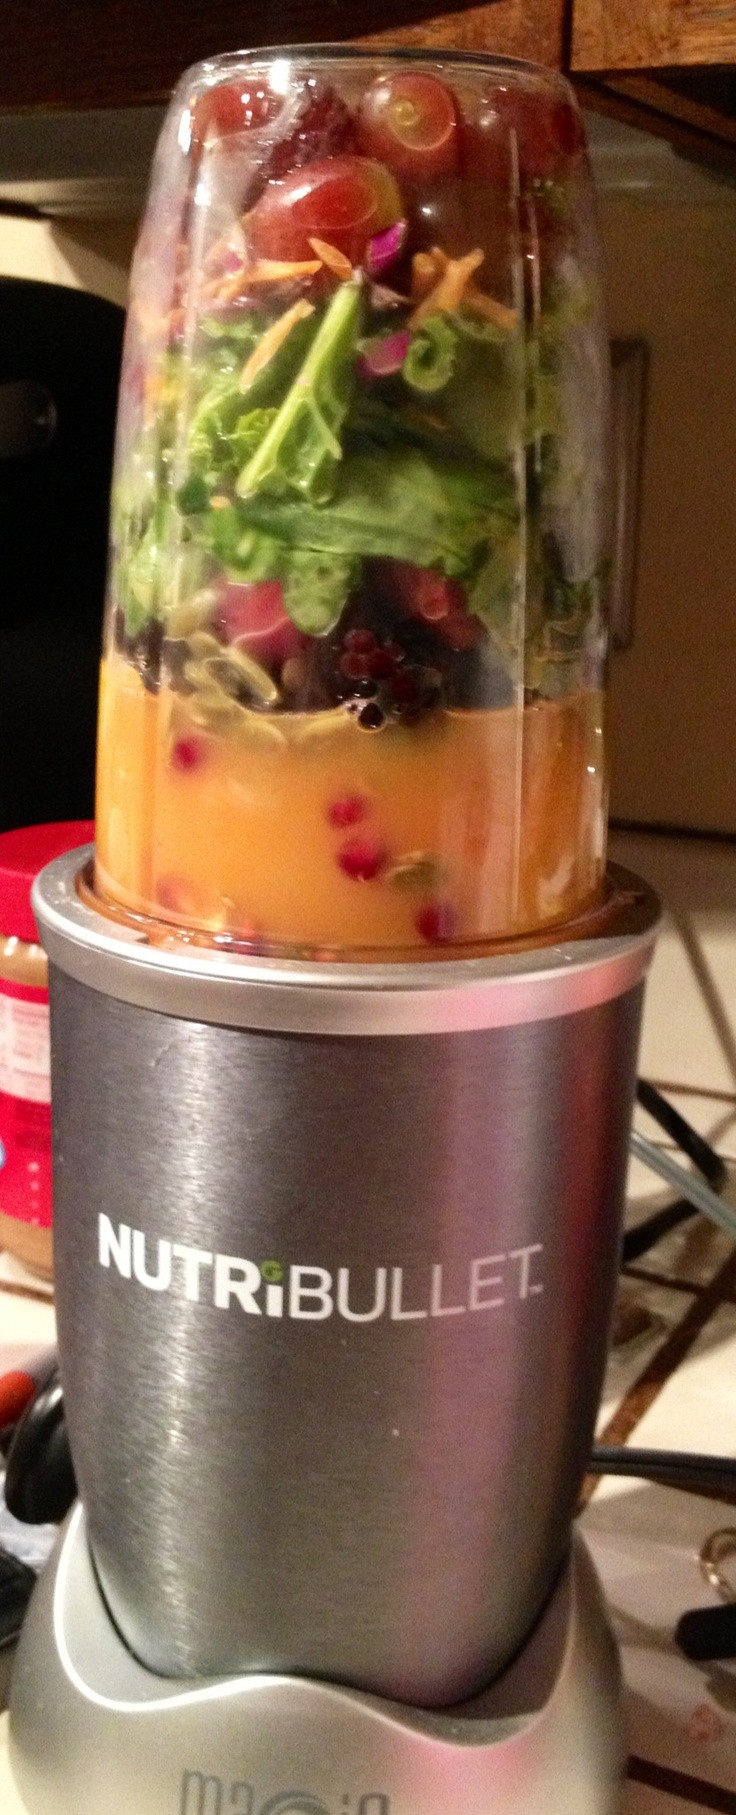 Nutribullet Smoothie Recipes  17 Best images about Nutribullet Nutriblast Recipes on